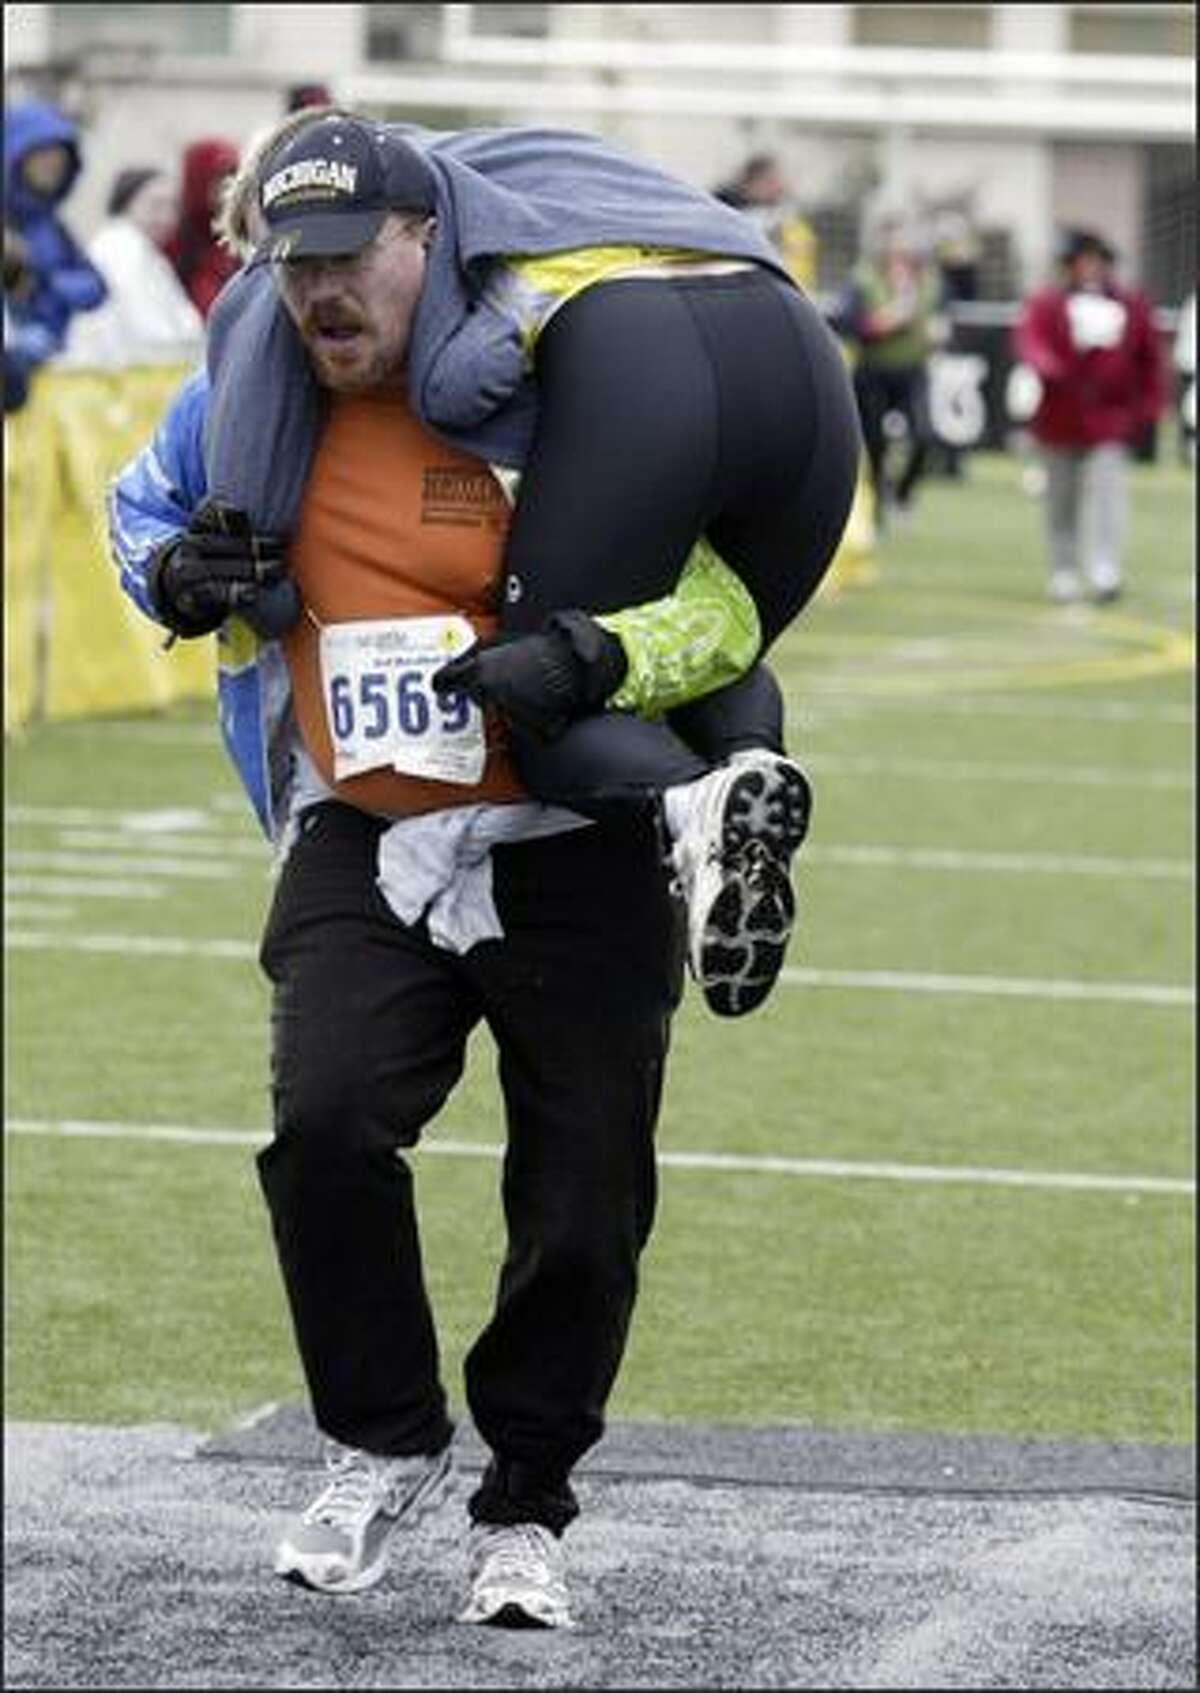 Wendell Joost carries his wife Hobbin across the finish line of the 26.1-mile walk event during the 2006 Seattle Marathon.